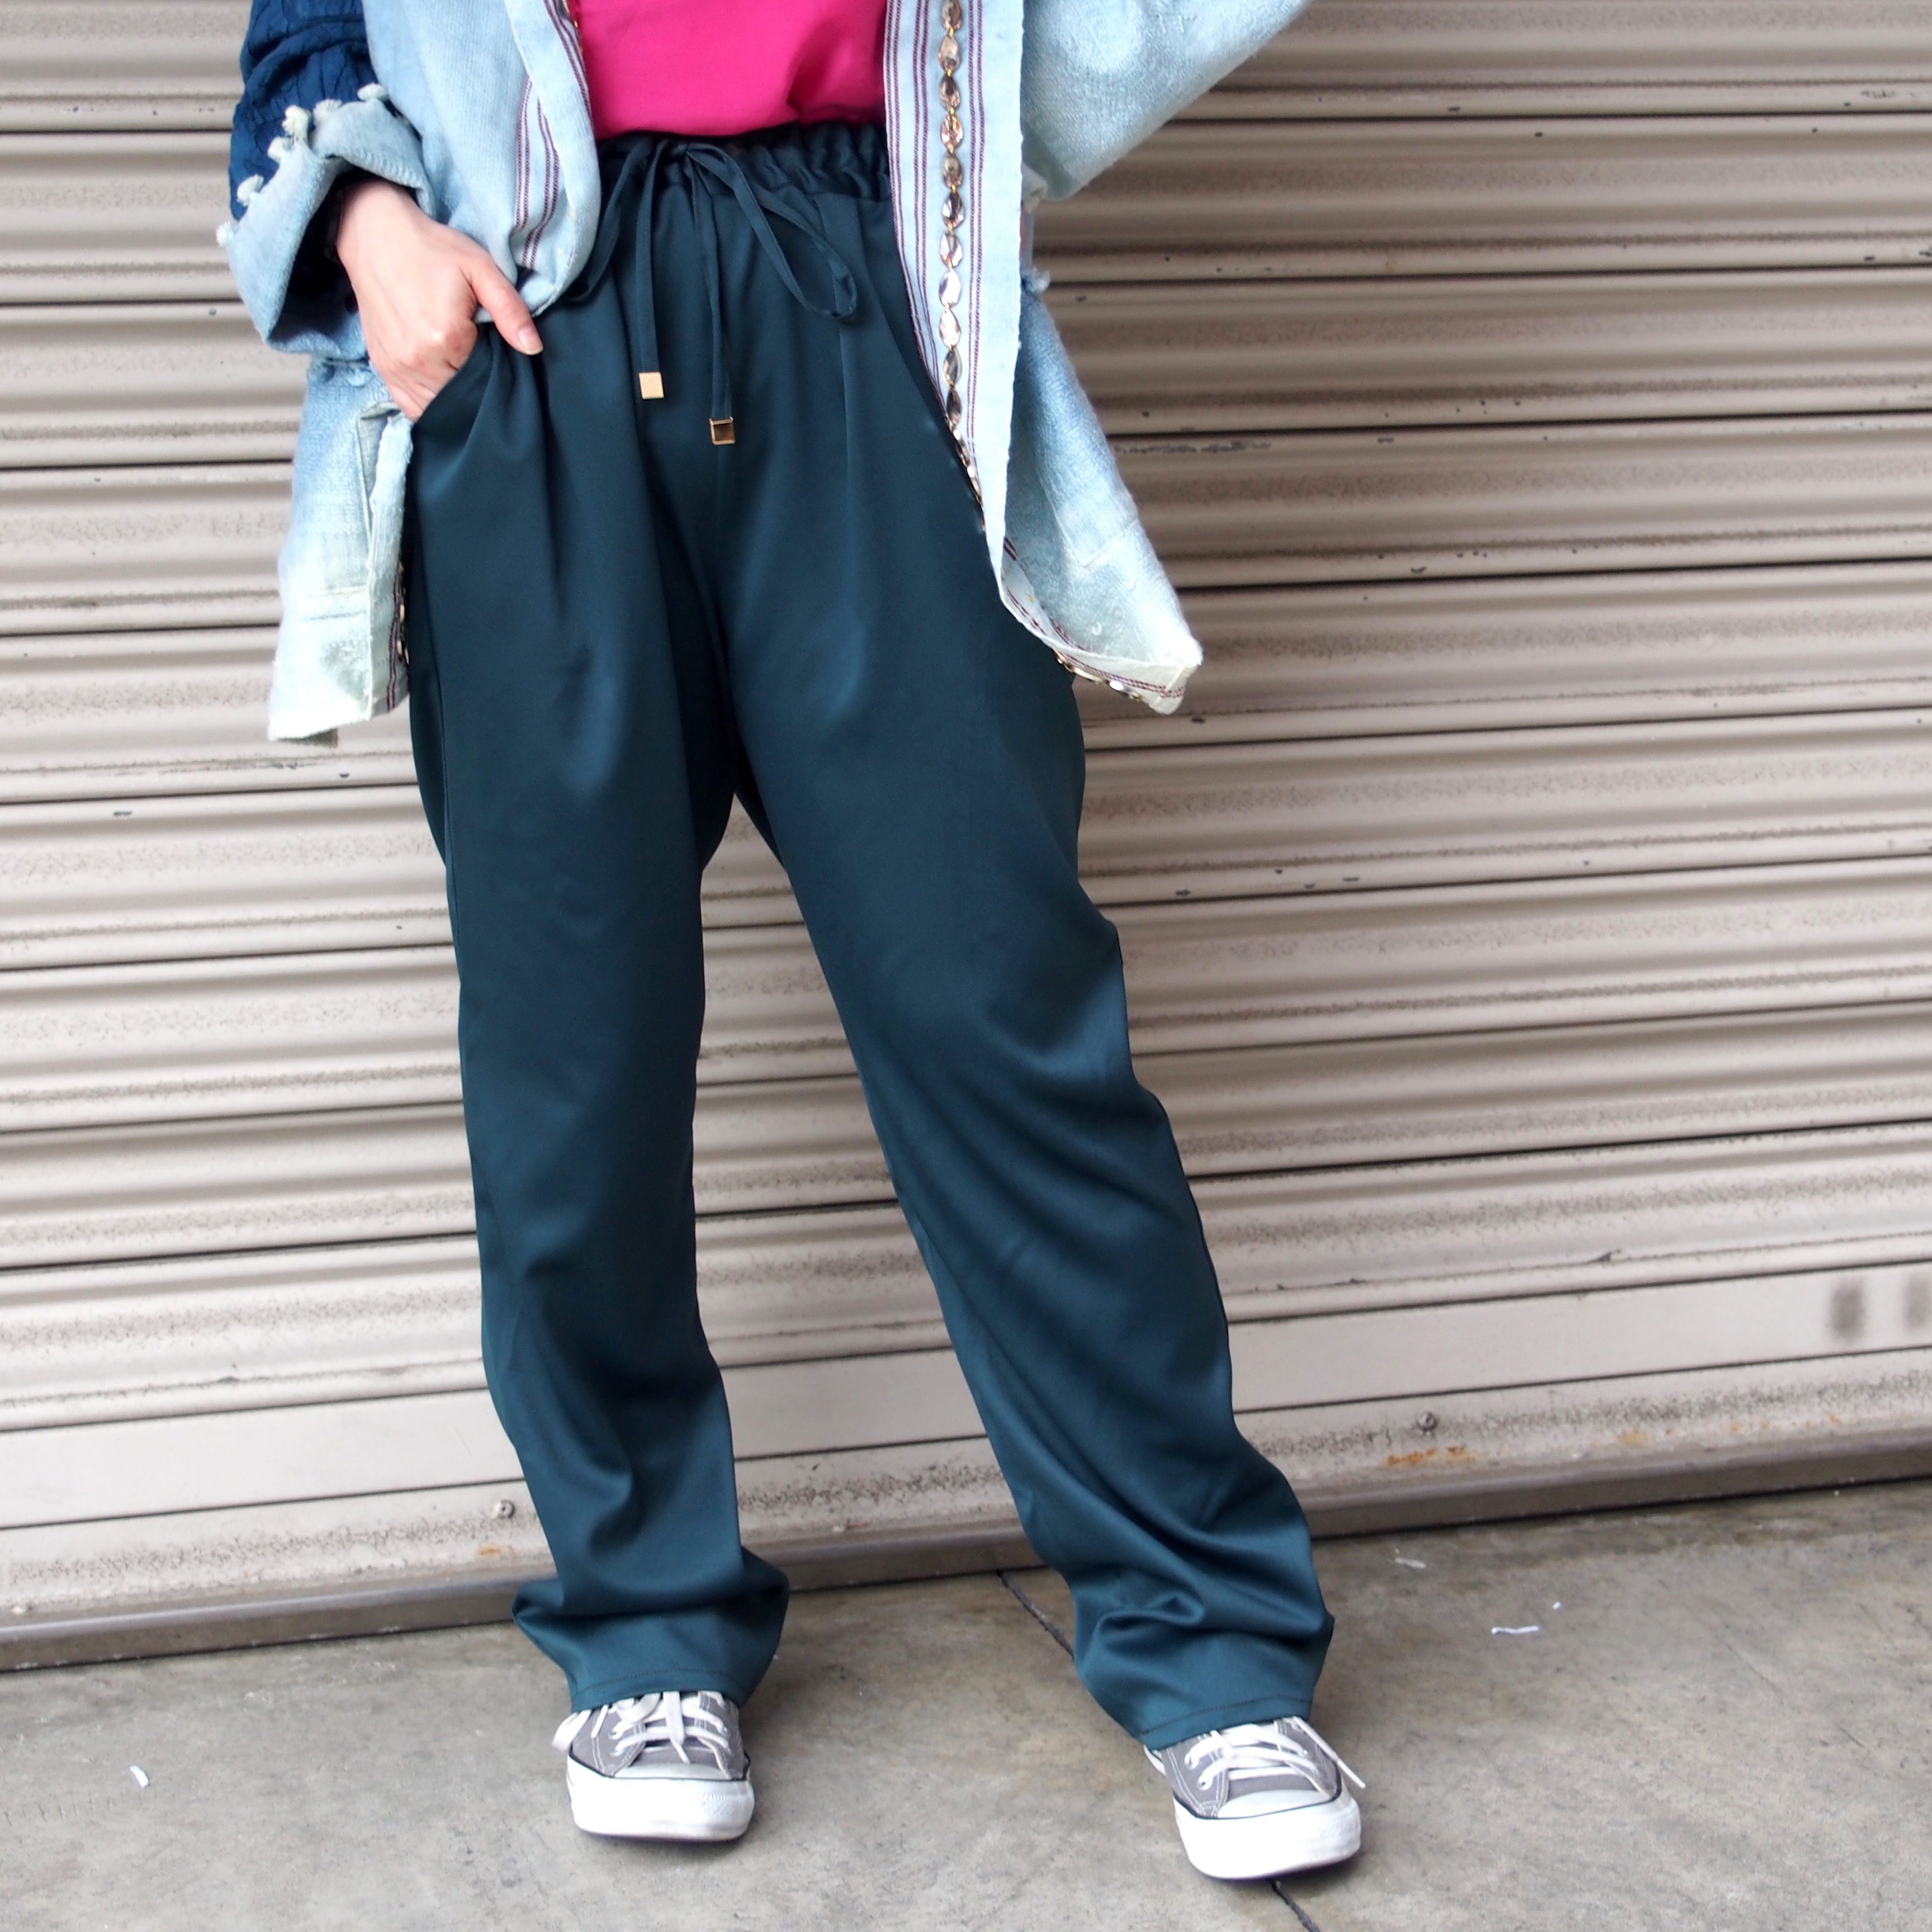 【ethical hippi】tapered pants(moss green) / 【エシカル ヒッピ】テーパード パンツ(モスグリーン)